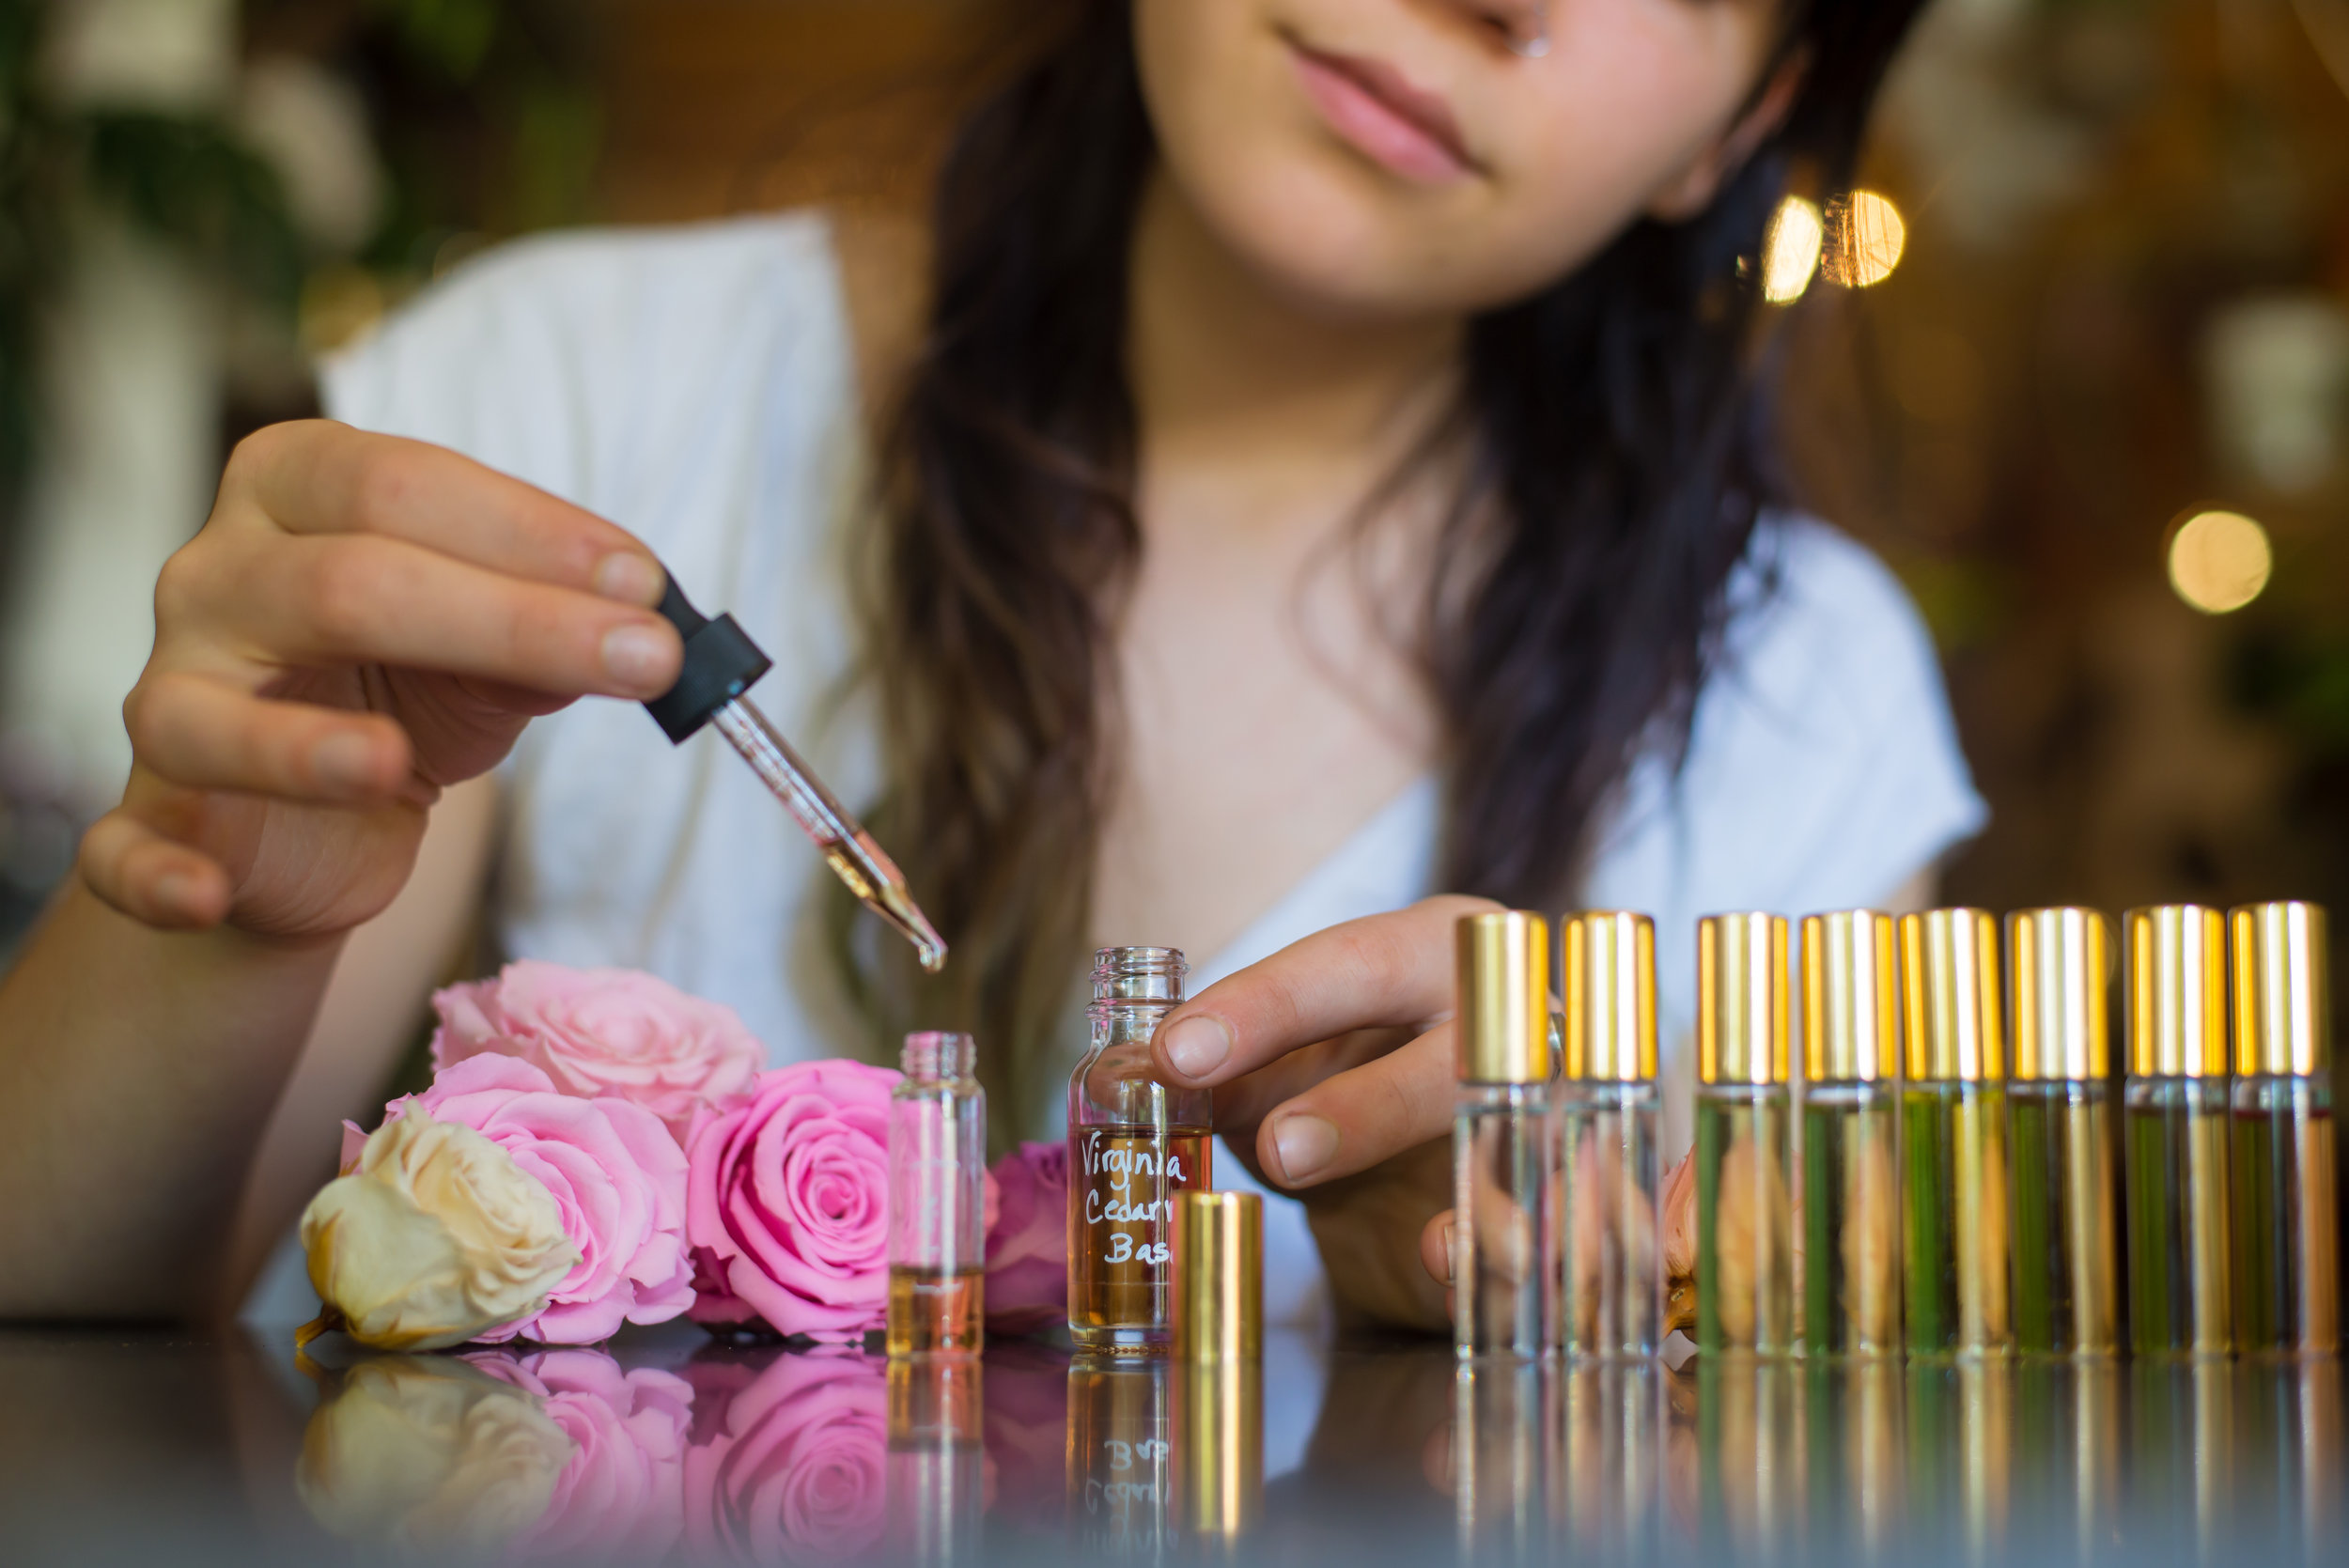 BOTANICAL PERFUMES   Take a journey through scent! Get ready to concoct with your imagination...  We will sit you at our Botanical Library with a specially designed kit of natural essences. You will encounter scents of tobacco and rose, leather and jasmine, blood orange and cognac! We host your experience while our perfume booklet works to guide you through the creative process. All you need is included at our Essence Bar.